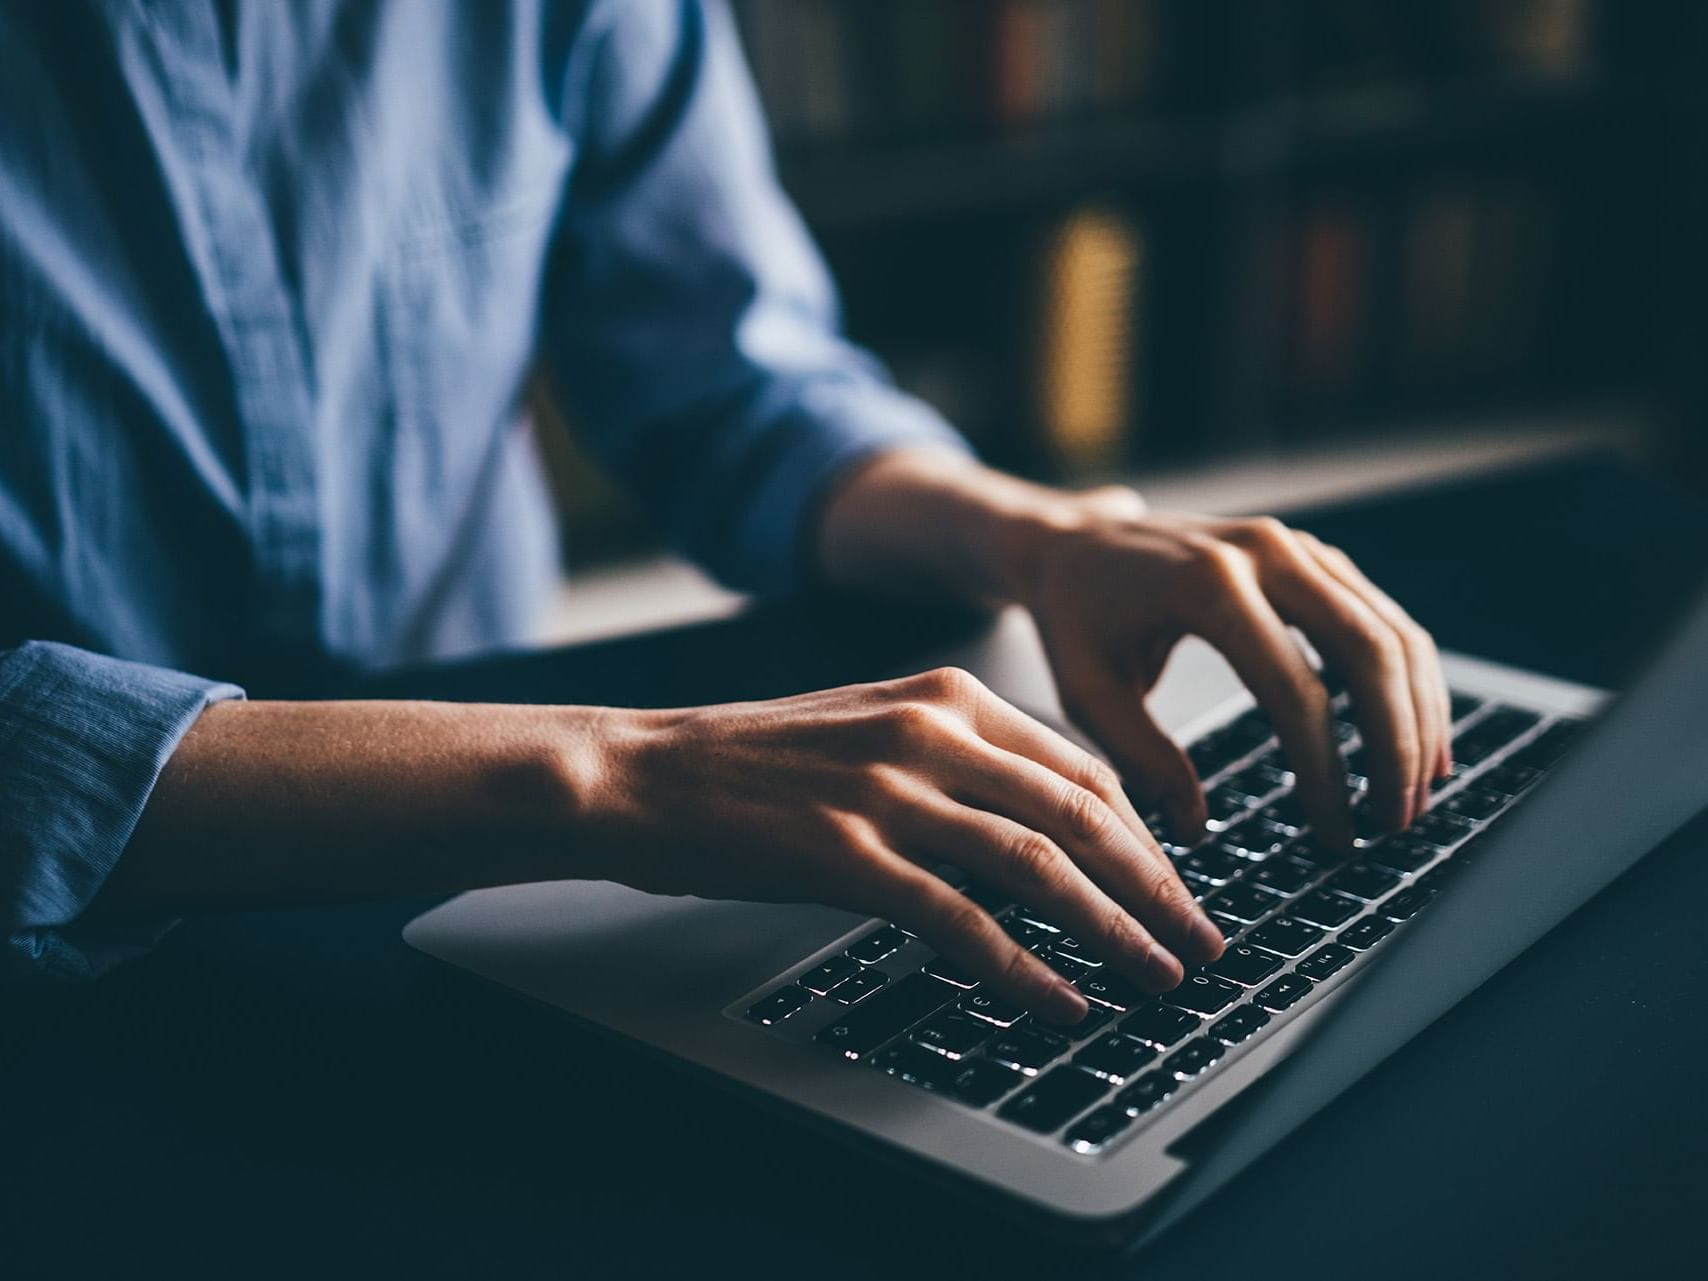 Close up on a person typing on a keyboard at Henn Na Hotel